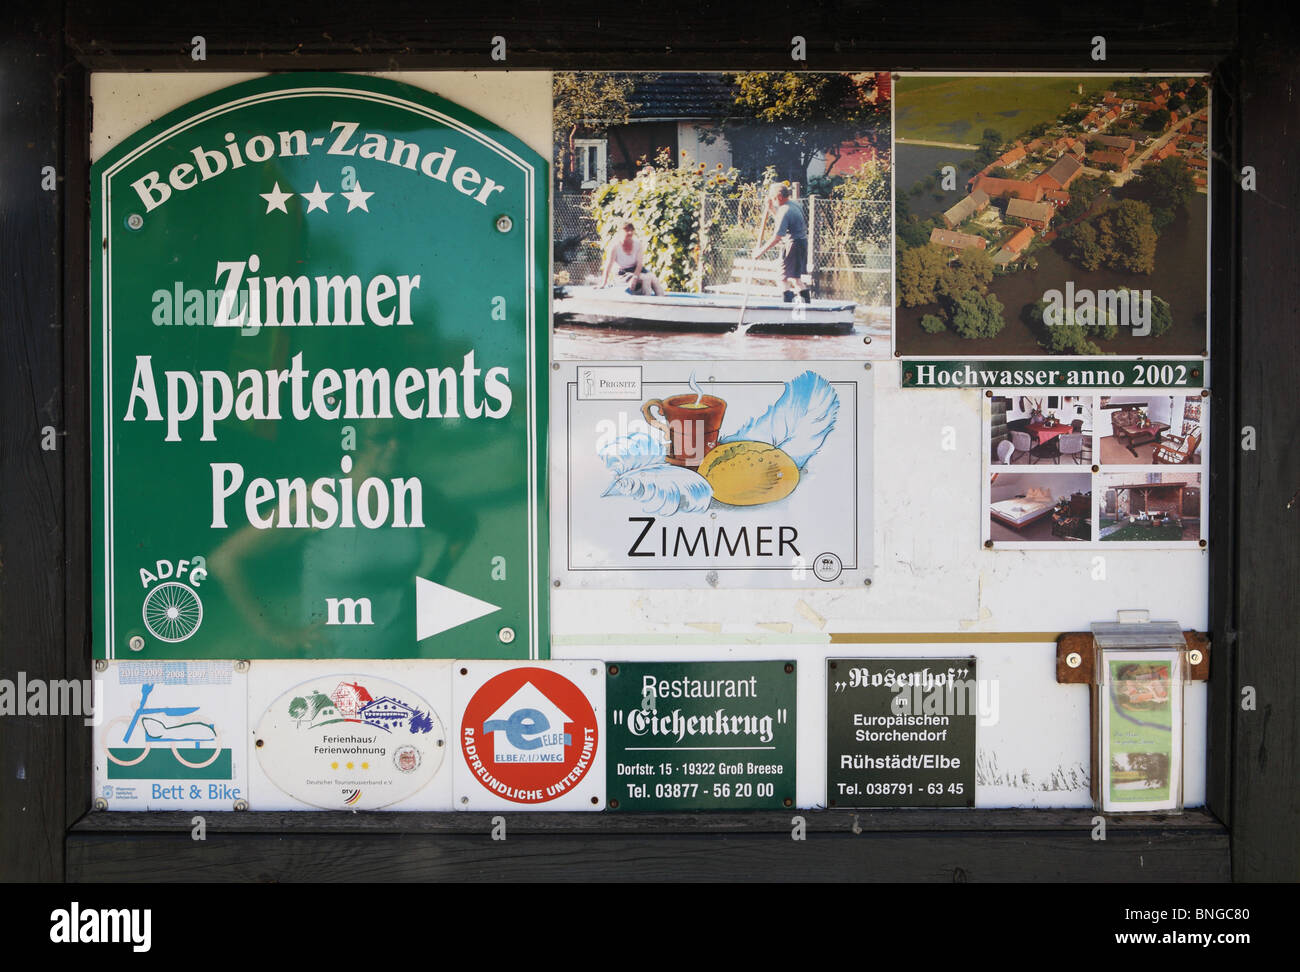 A noticeboard in the German village of Bälow, advertising local B&B accommodation and hotels. - Stock Image